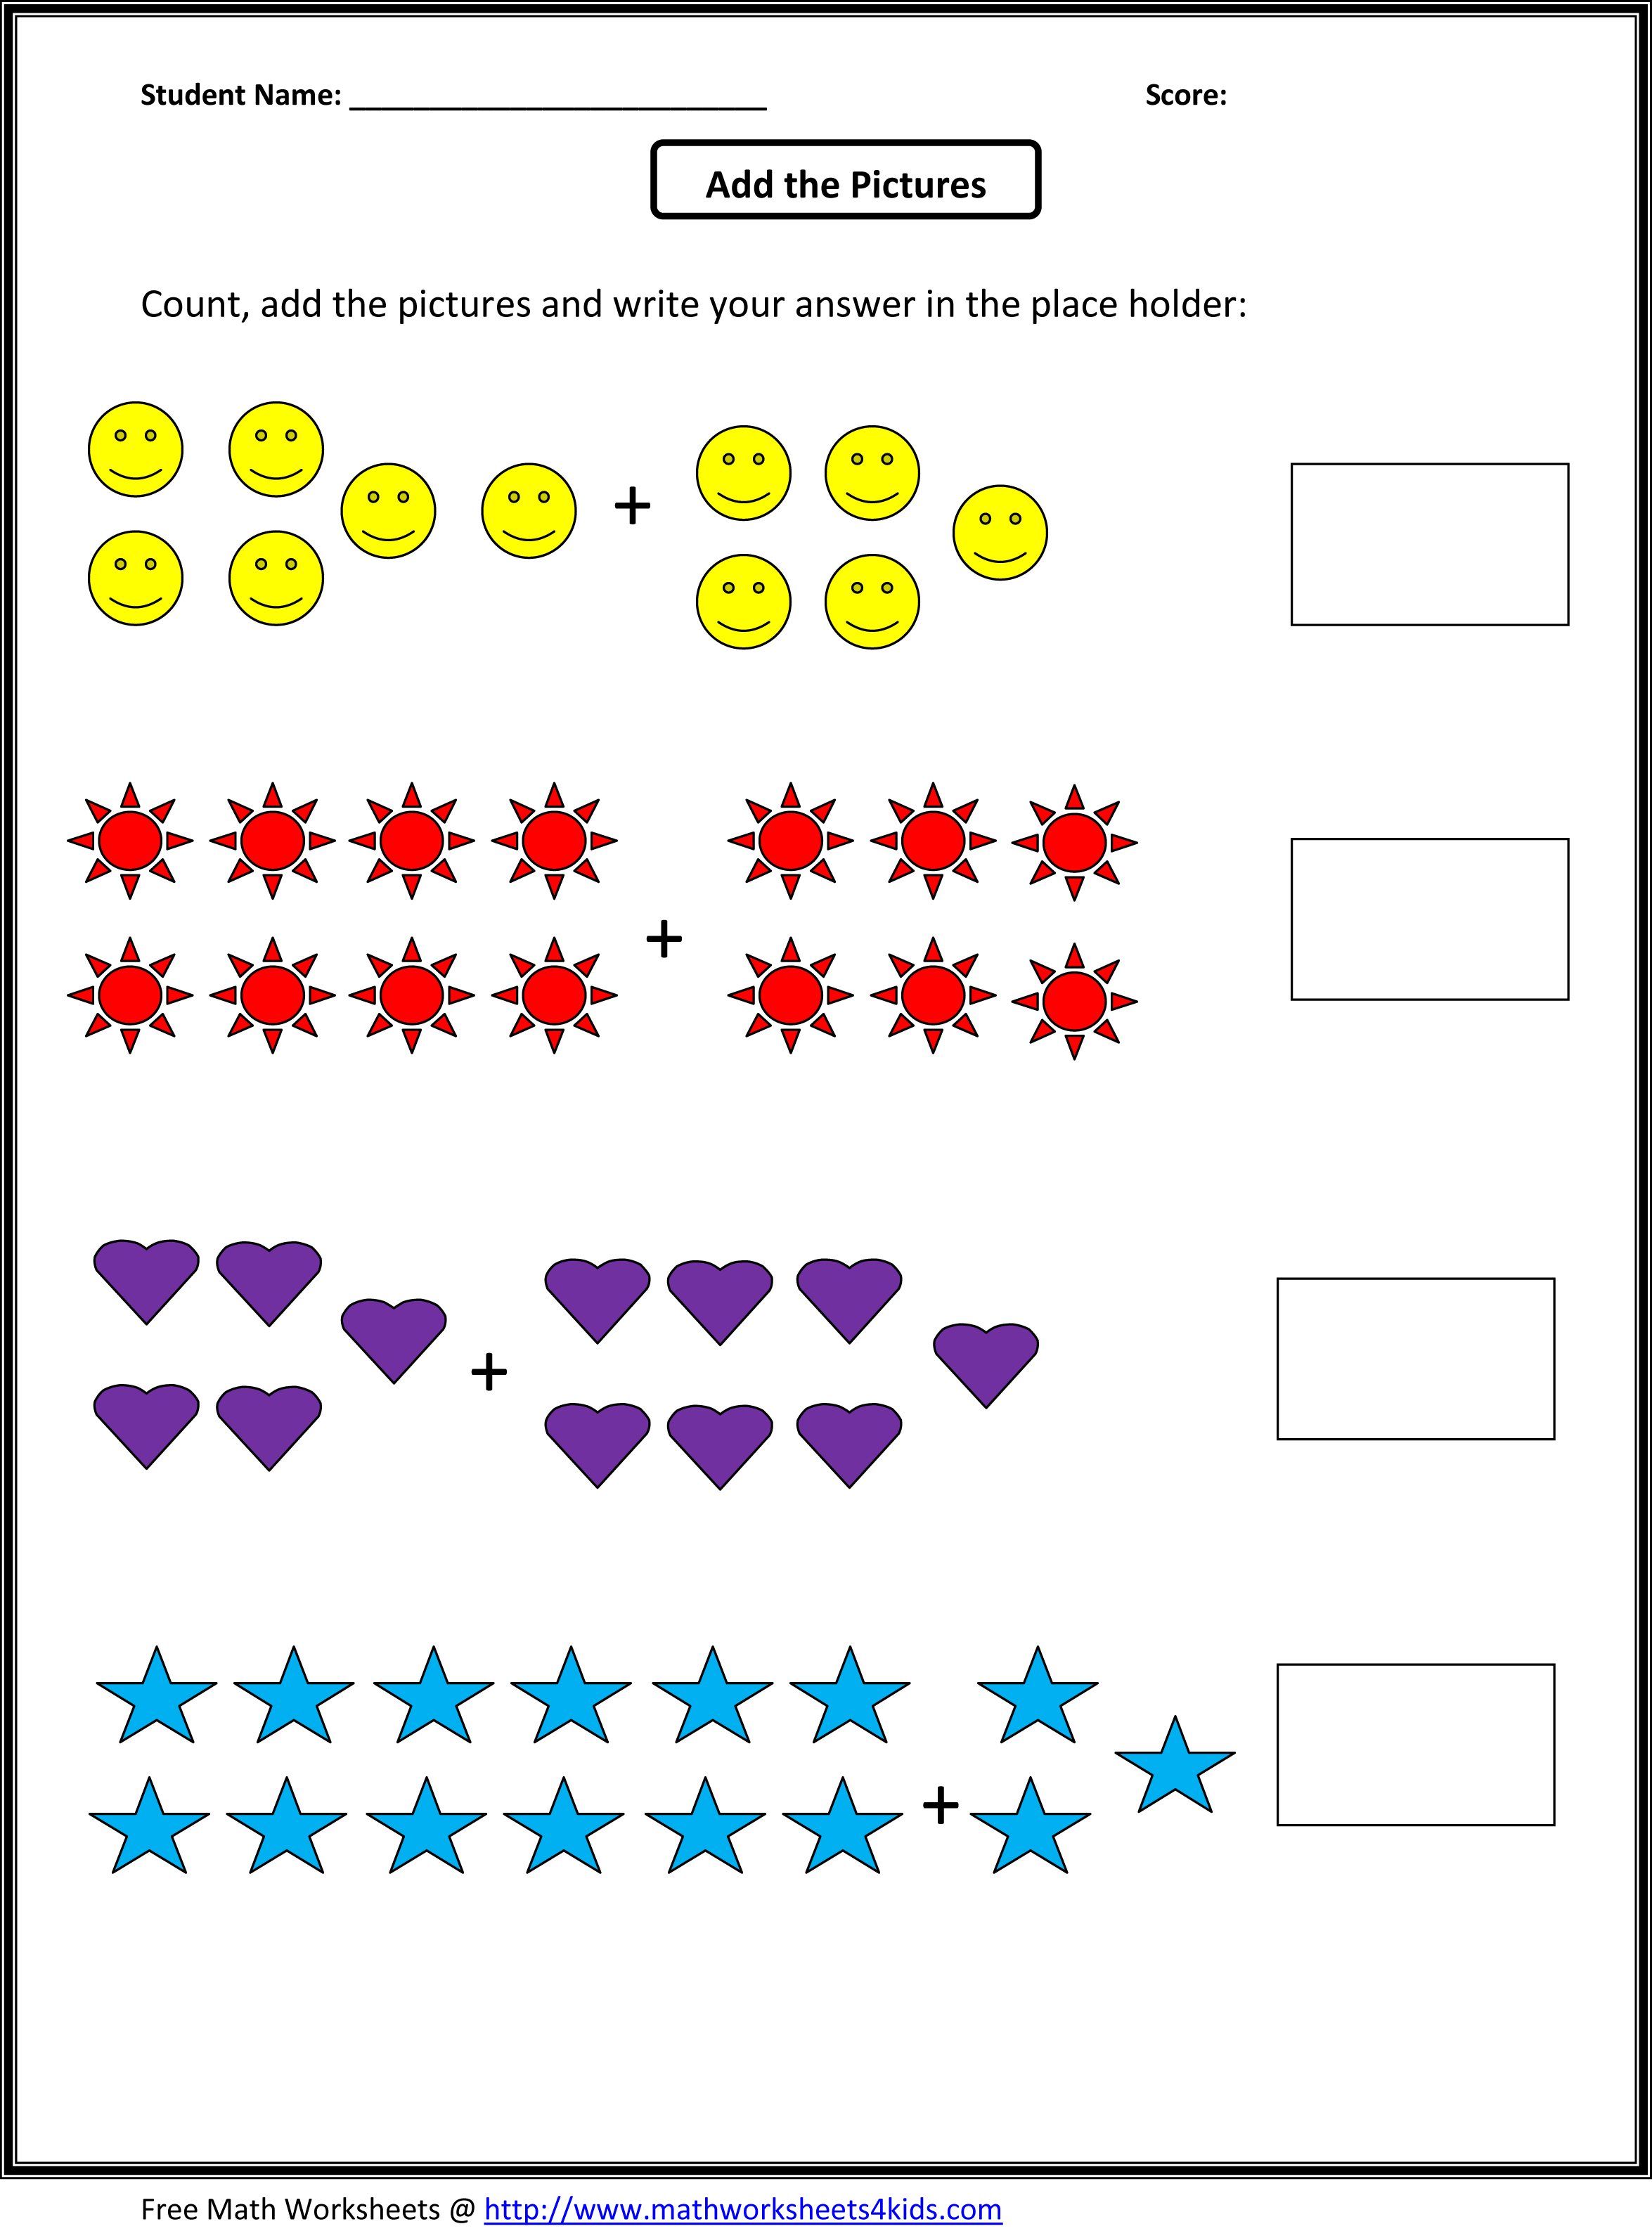 Proatmealus  Mesmerizing Grade  Maths Worksheet  Reocurent With Gorgeous Math Worksheets For St Grade Free  Reocurent With Beautiful Writing Practice Worksheets For First Grade Also Grammar Free Printable Worksheets In Addition Px Pap Lower Worksheet And Series Of Adjectives Worksheets Grade  As Well As Metals And Non Metals Worksheet Additionally Squares Worksheets From Reocurentcom With Proatmealus  Gorgeous Grade  Maths Worksheet  Reocurent With Beautiful Math Worksheets For St Grade Free  Reocurent And Mesmerizing Writing Practice Worksheets For First Grade Also Grammar Free Printable Worksheets In Addition Px Pap Lower Worksheet From Reocurentcom